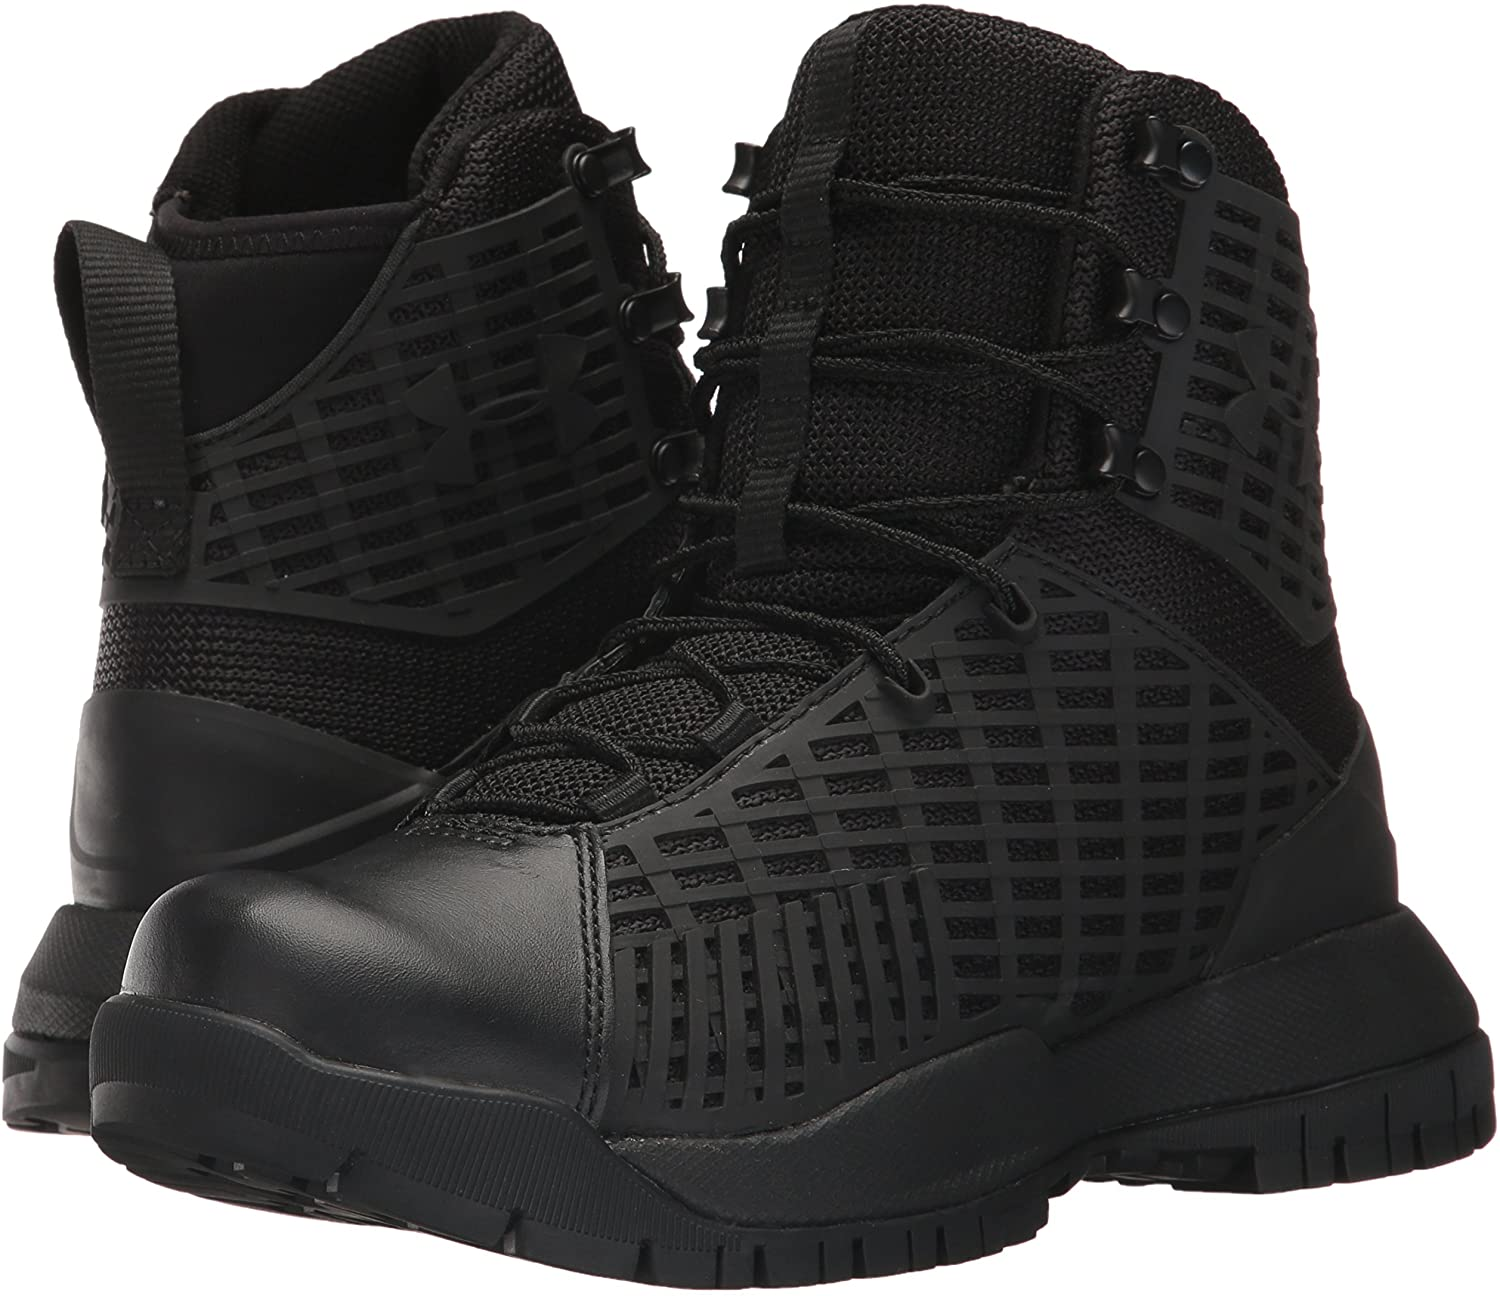 Another pair of Under Armour EMS boots in our list.